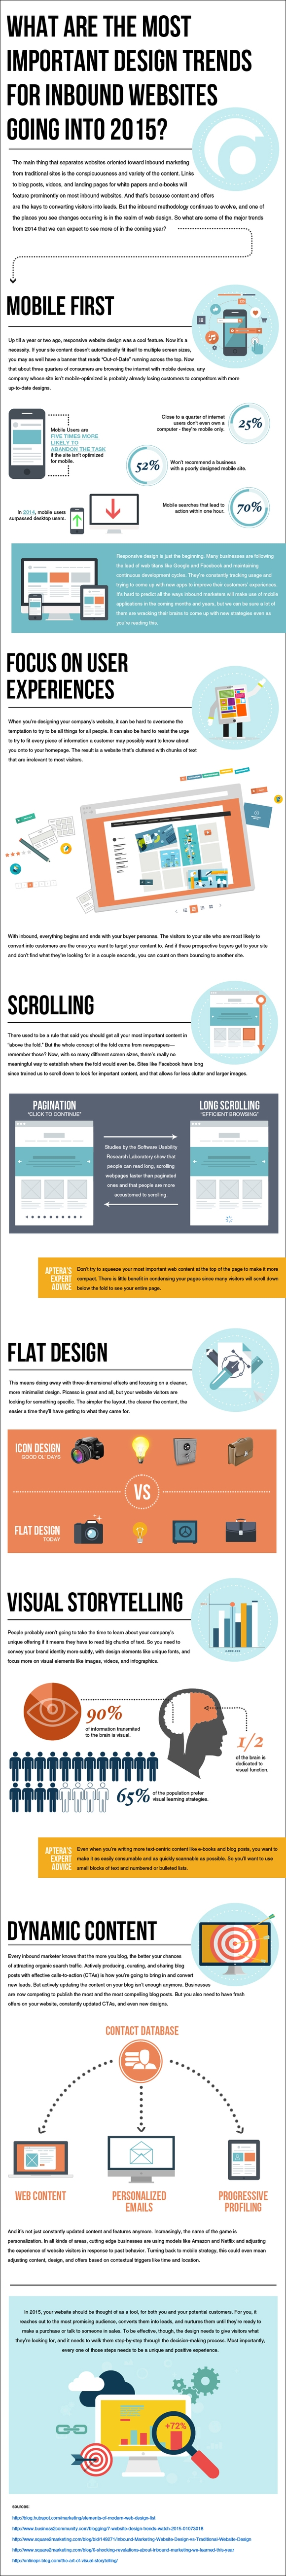 Design Trends for Inbound Websites in 2016